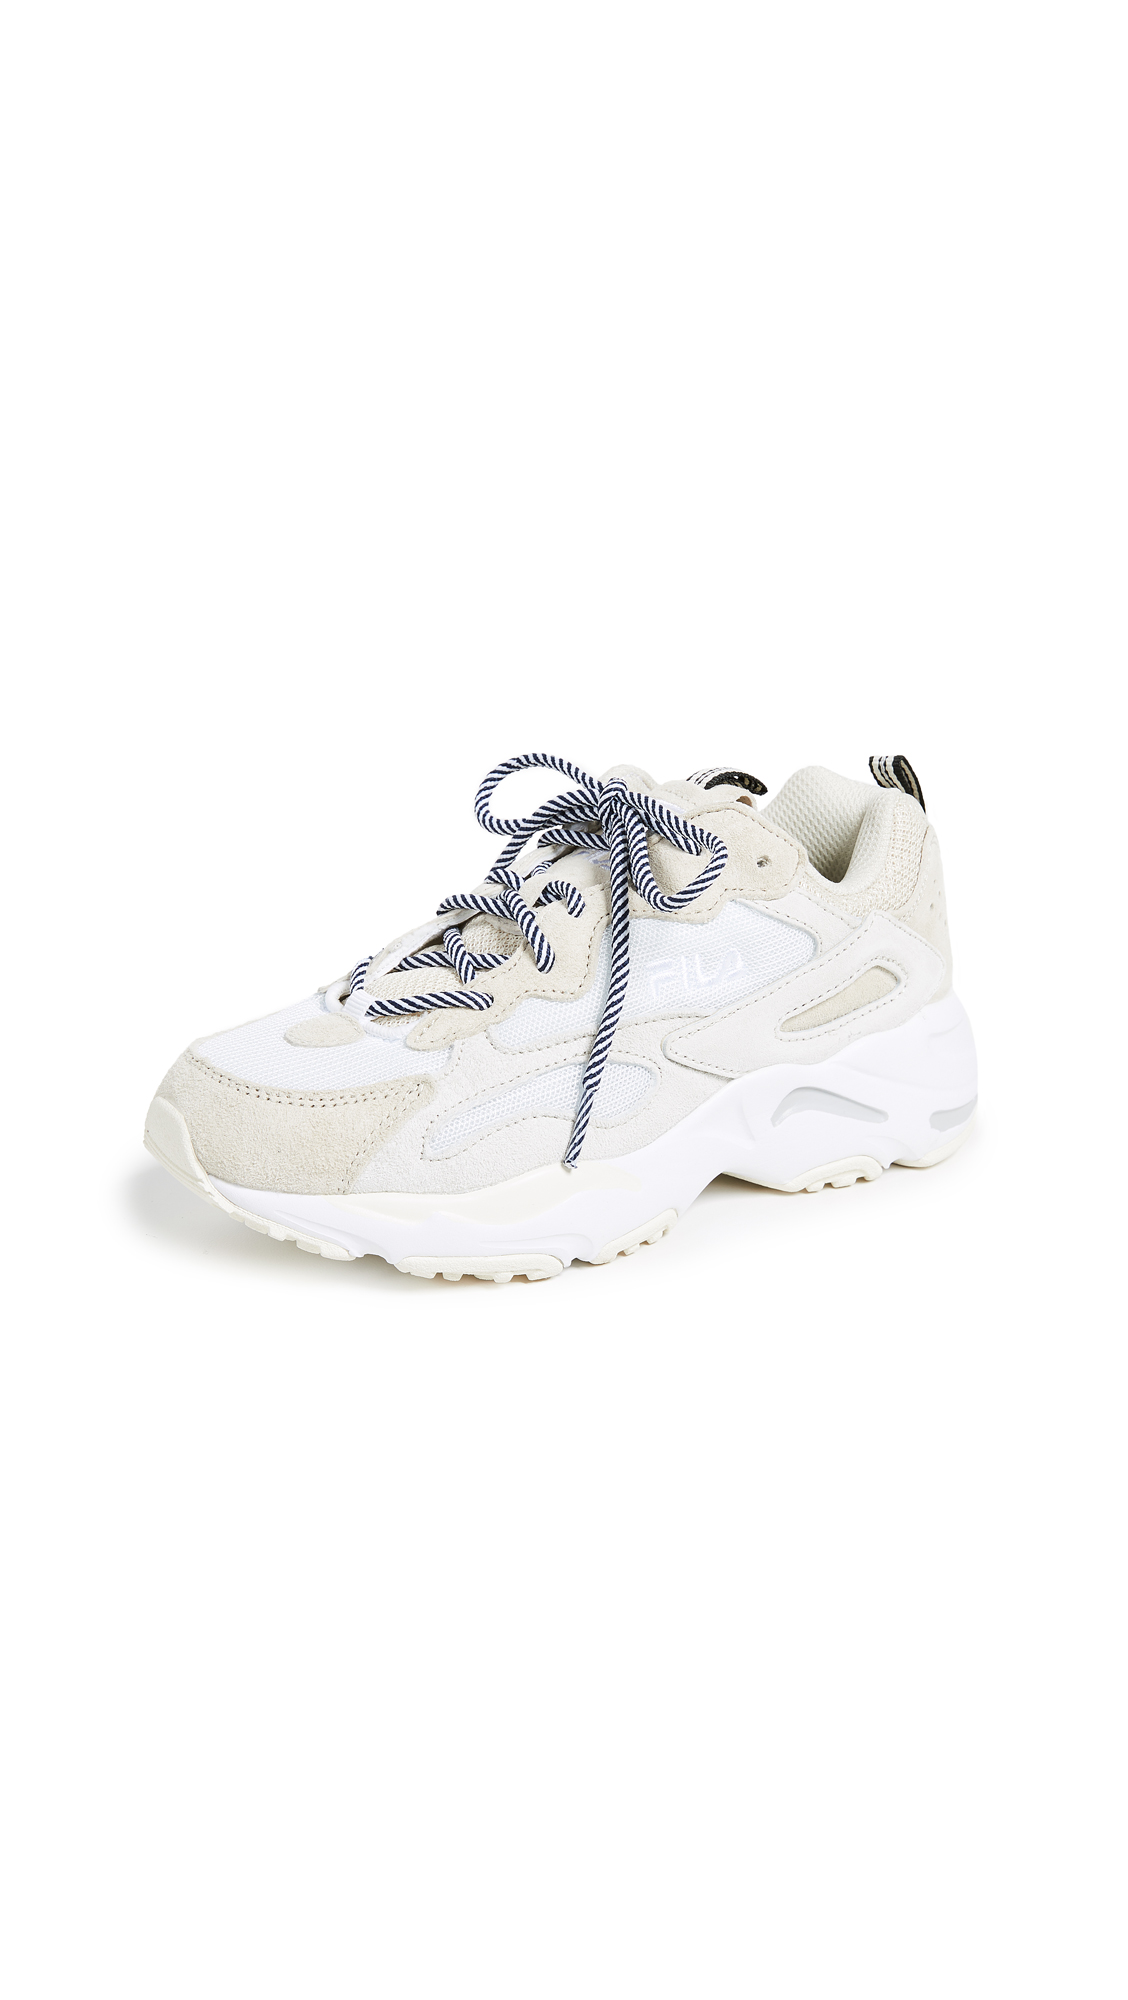 Fila Ray Tracer Sneakers - White